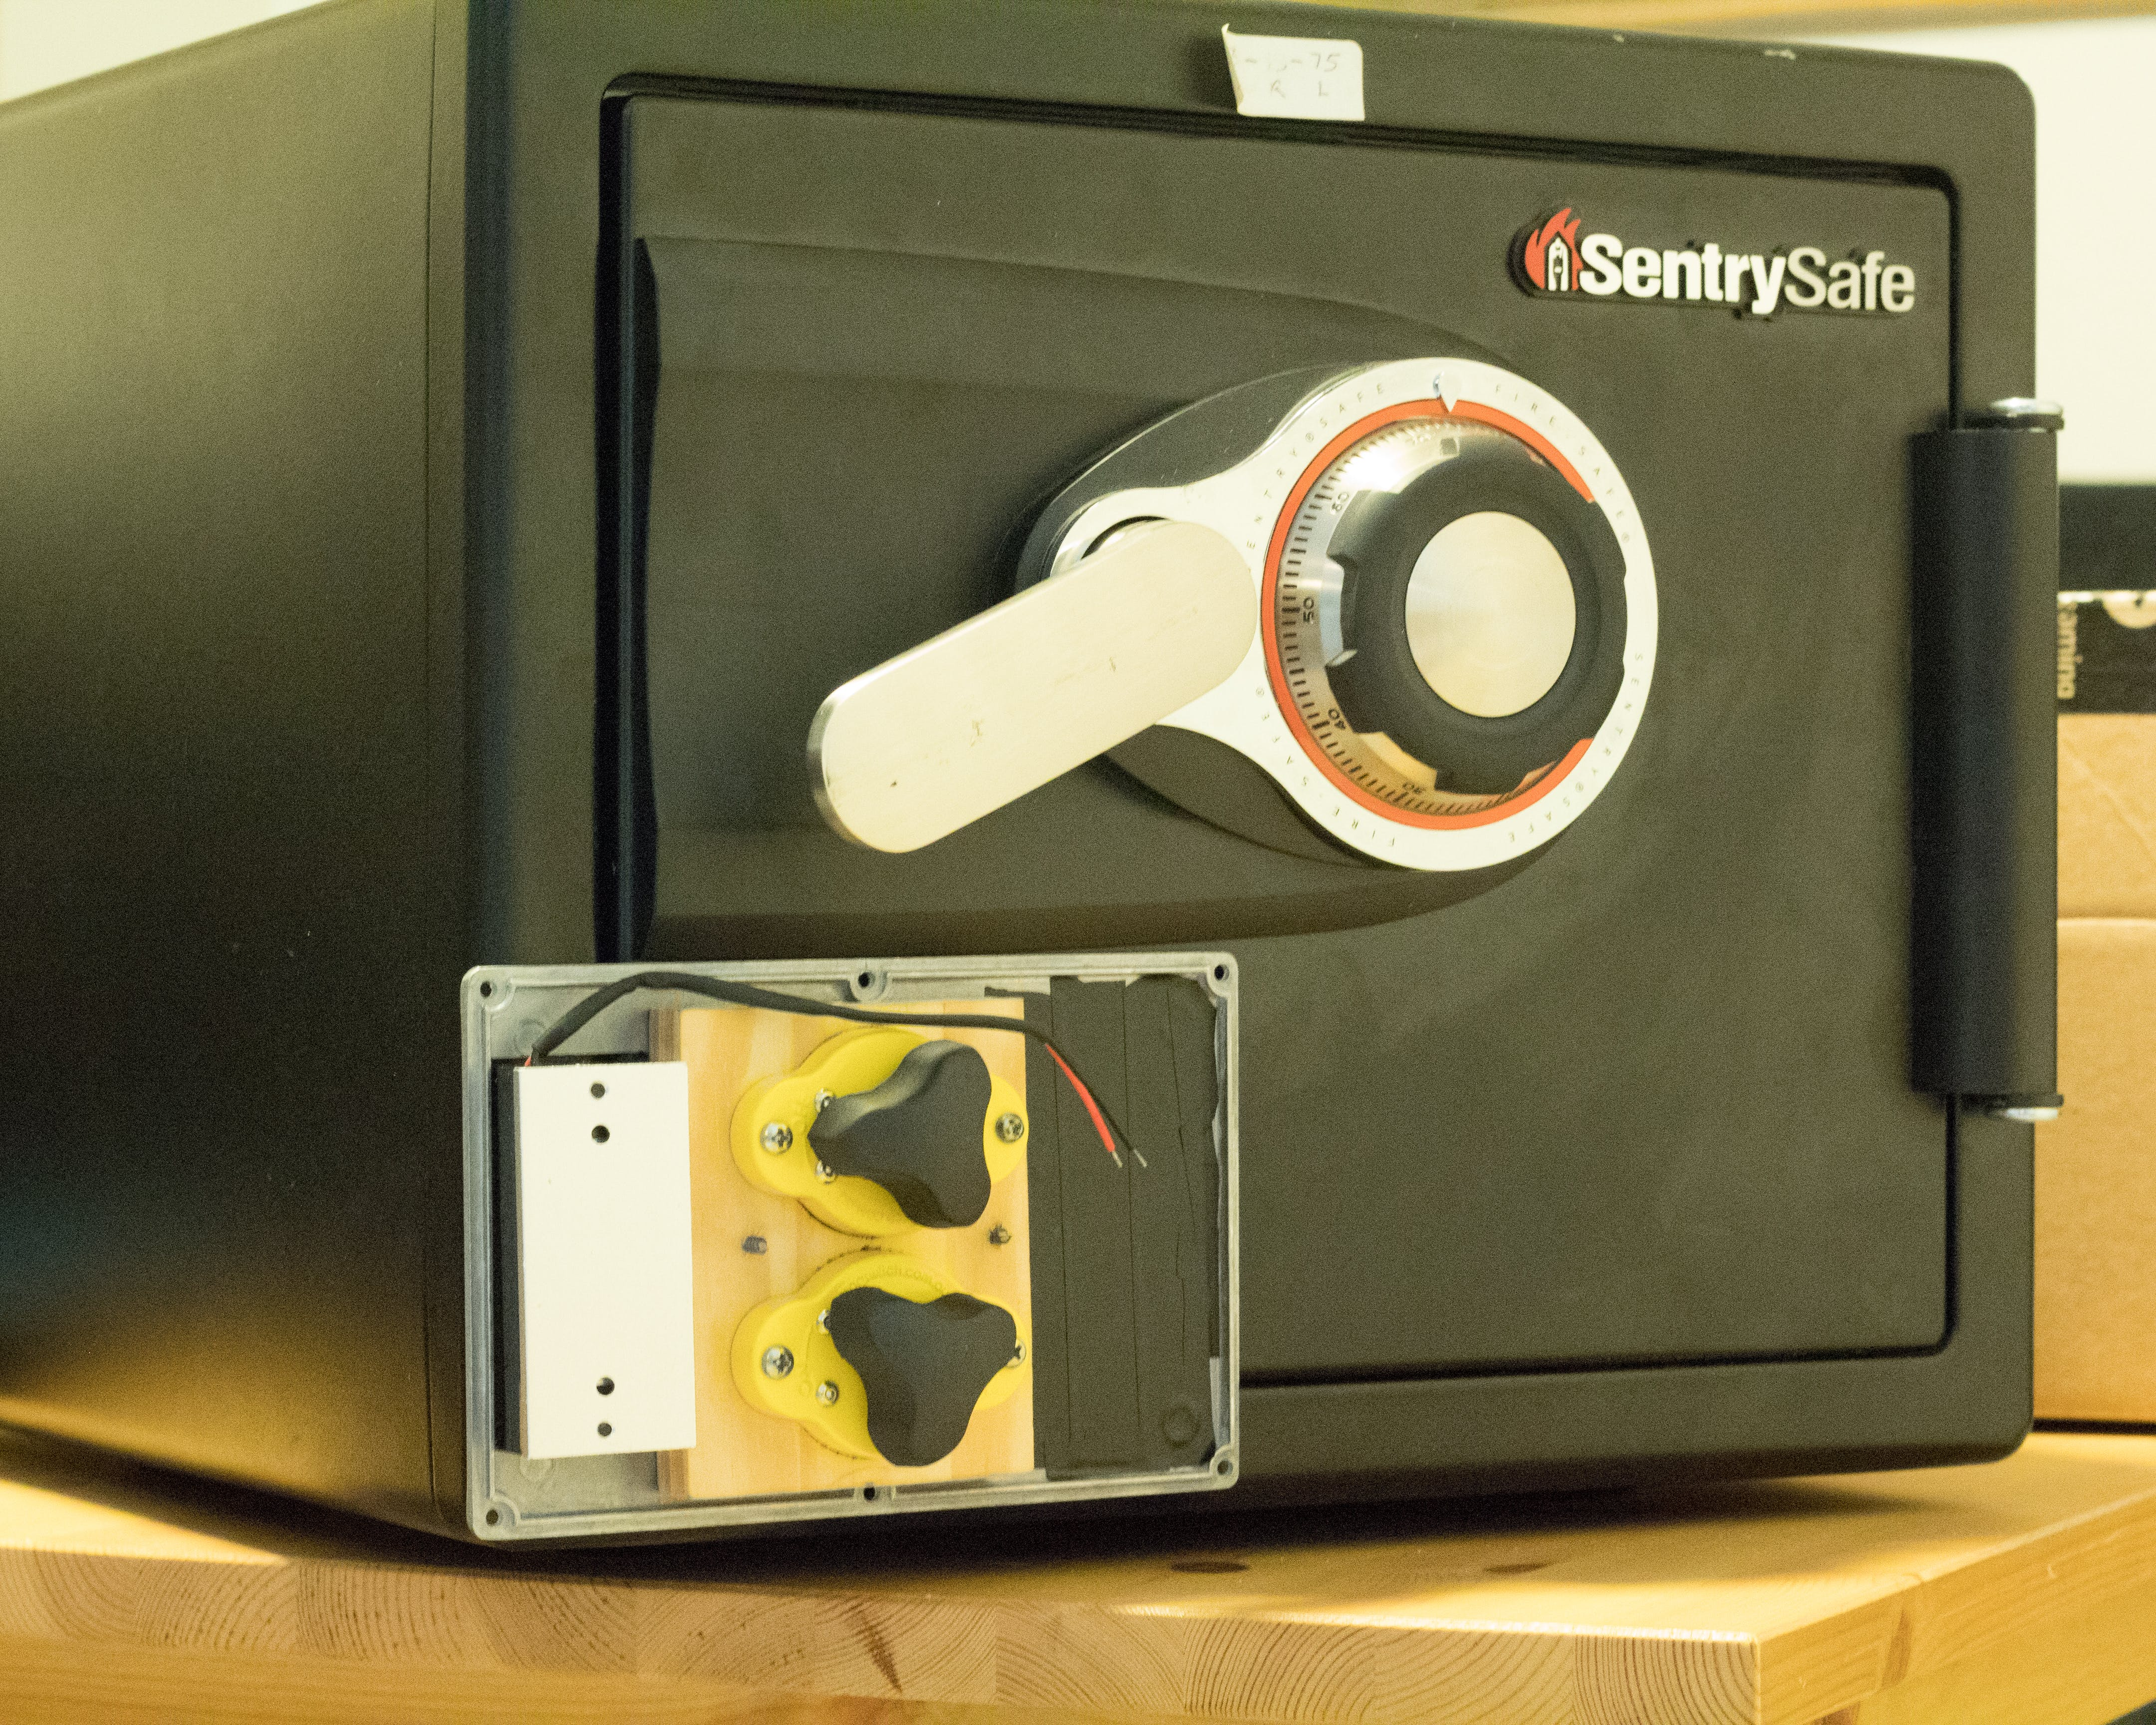 Demonstration of the switchable permanent magnets on the safe door.